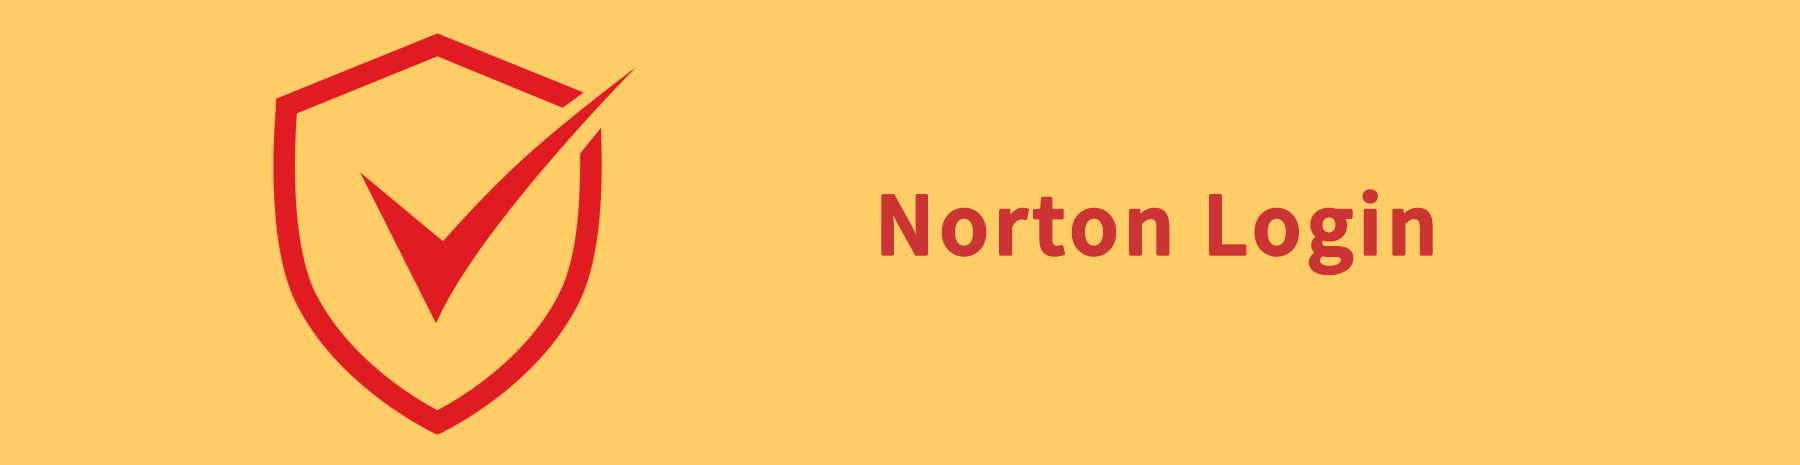 Norton Login